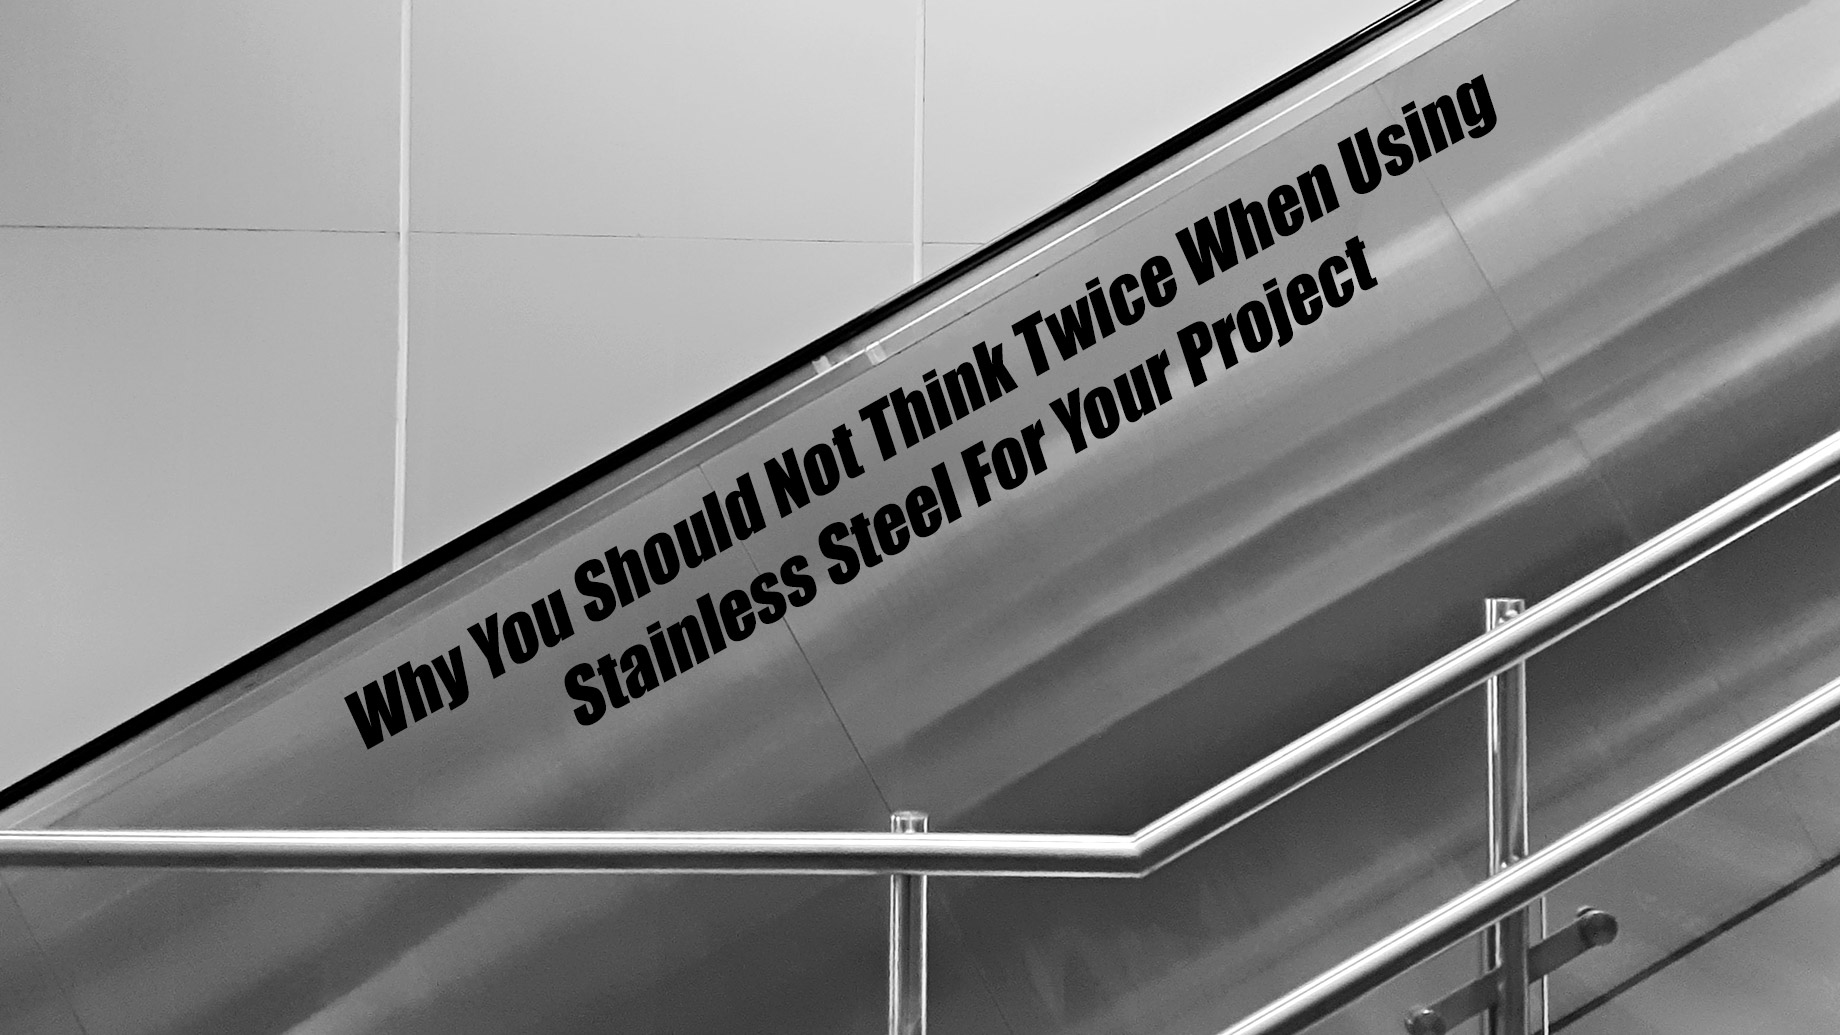 Why You Should Not Think Twice When Using Stainless Steel For Your Project